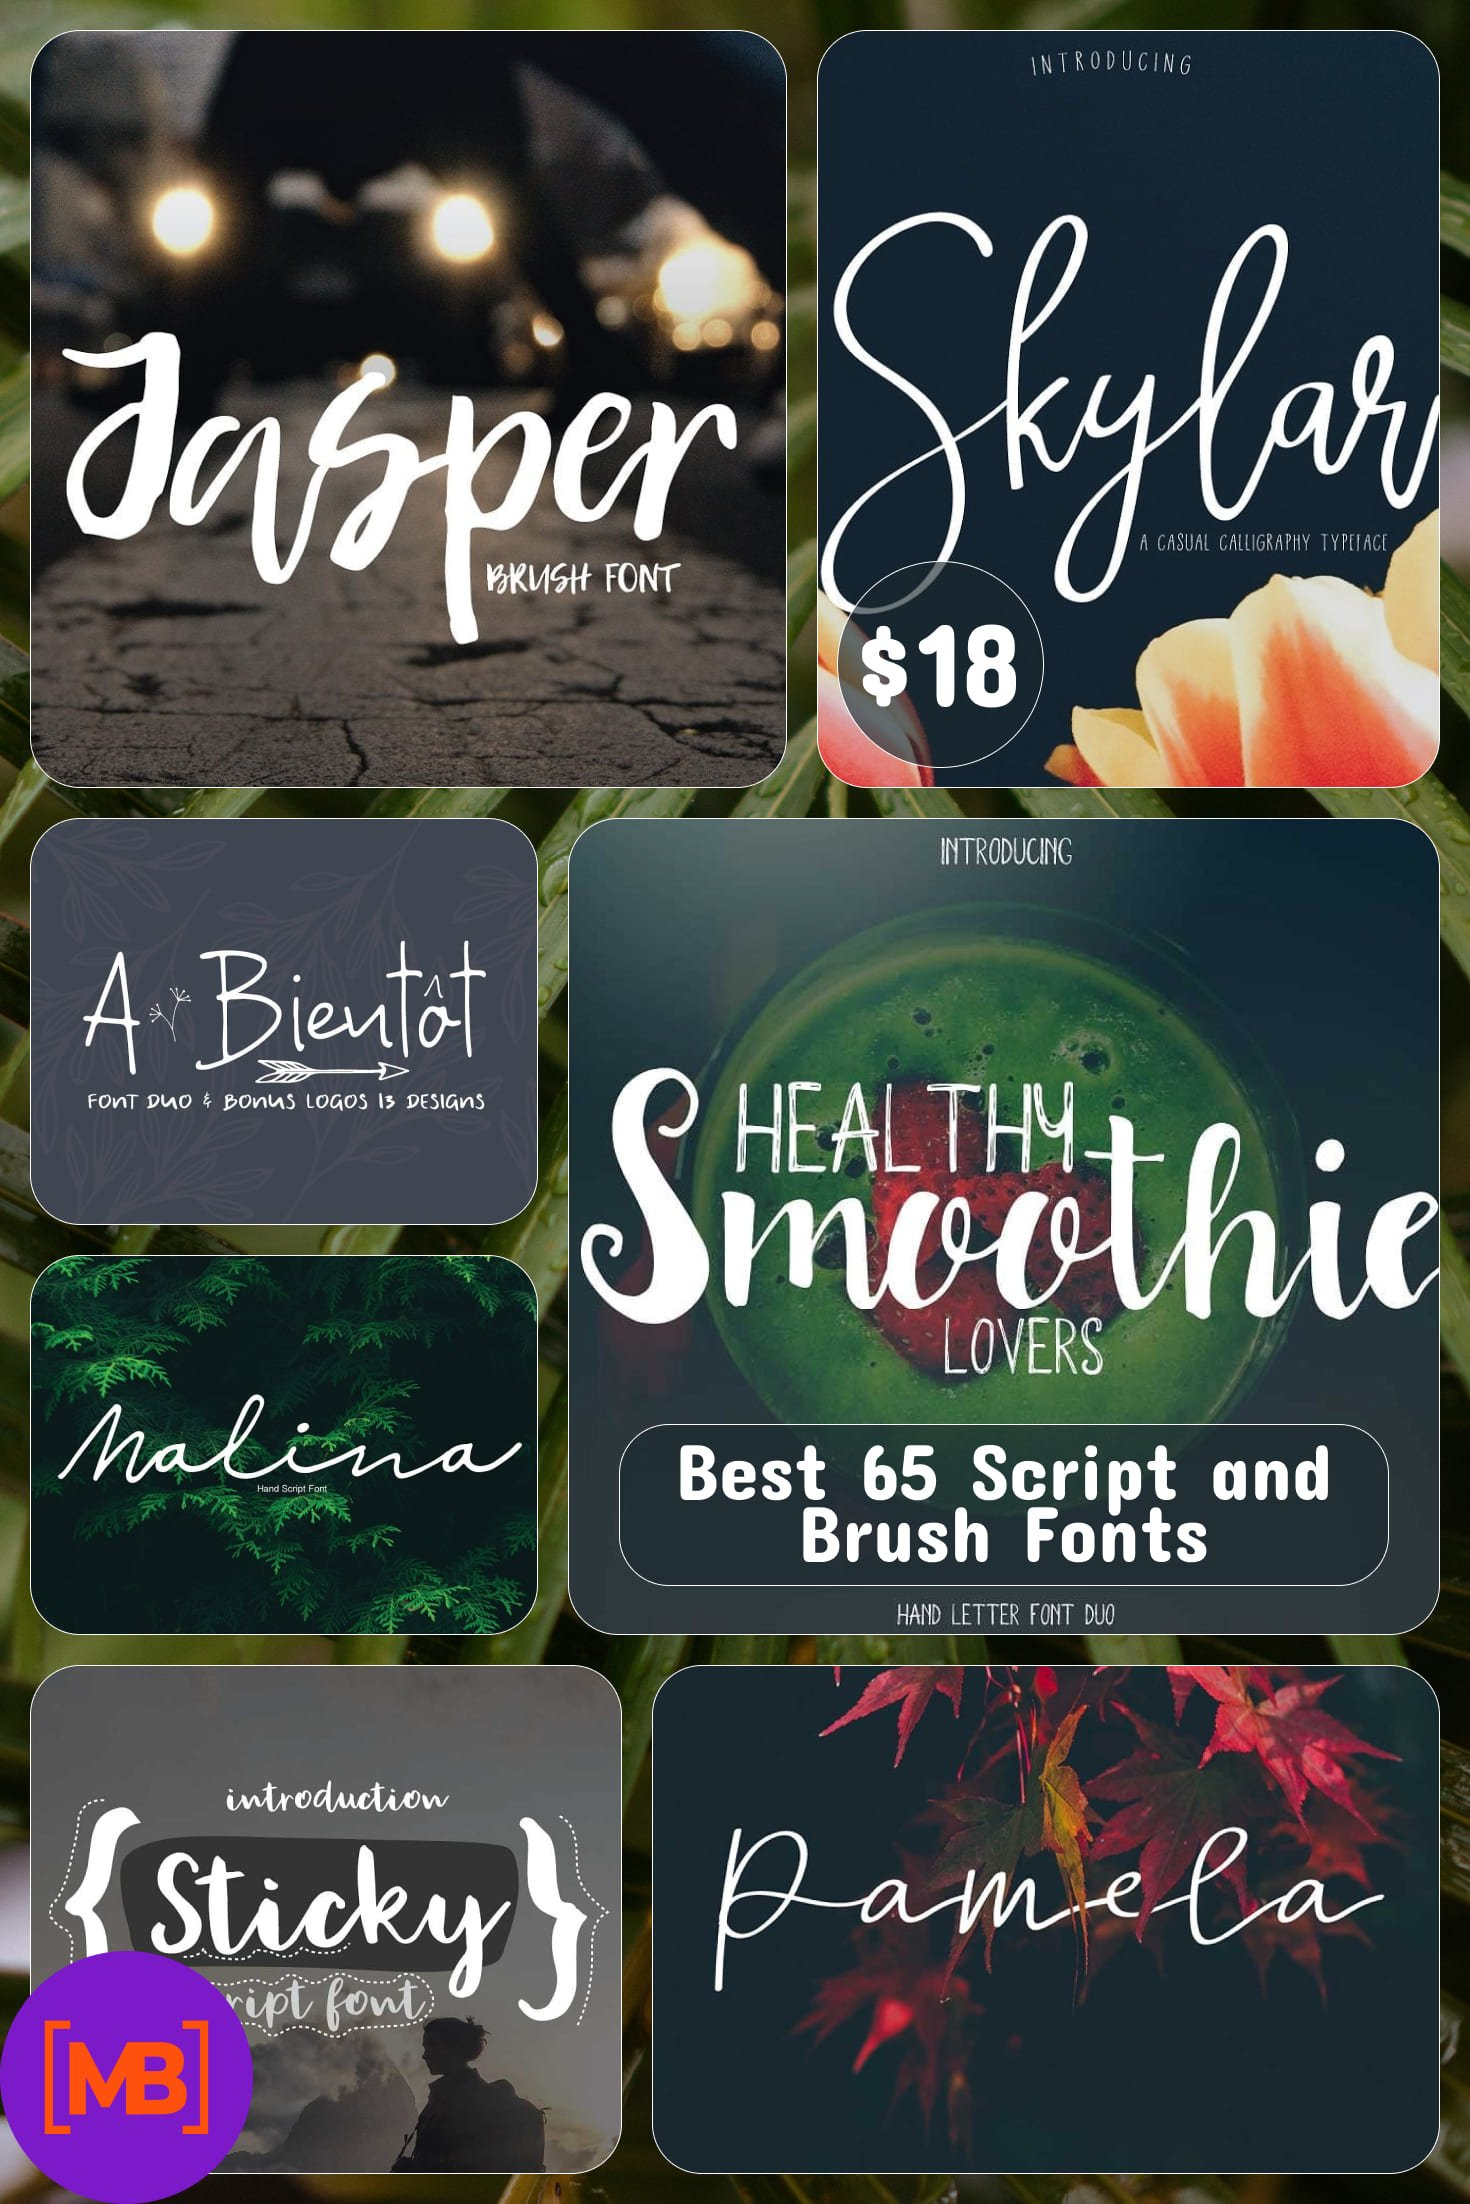 Girly Fonts - Best 65 Script and Brush Fonts. Collage Image.